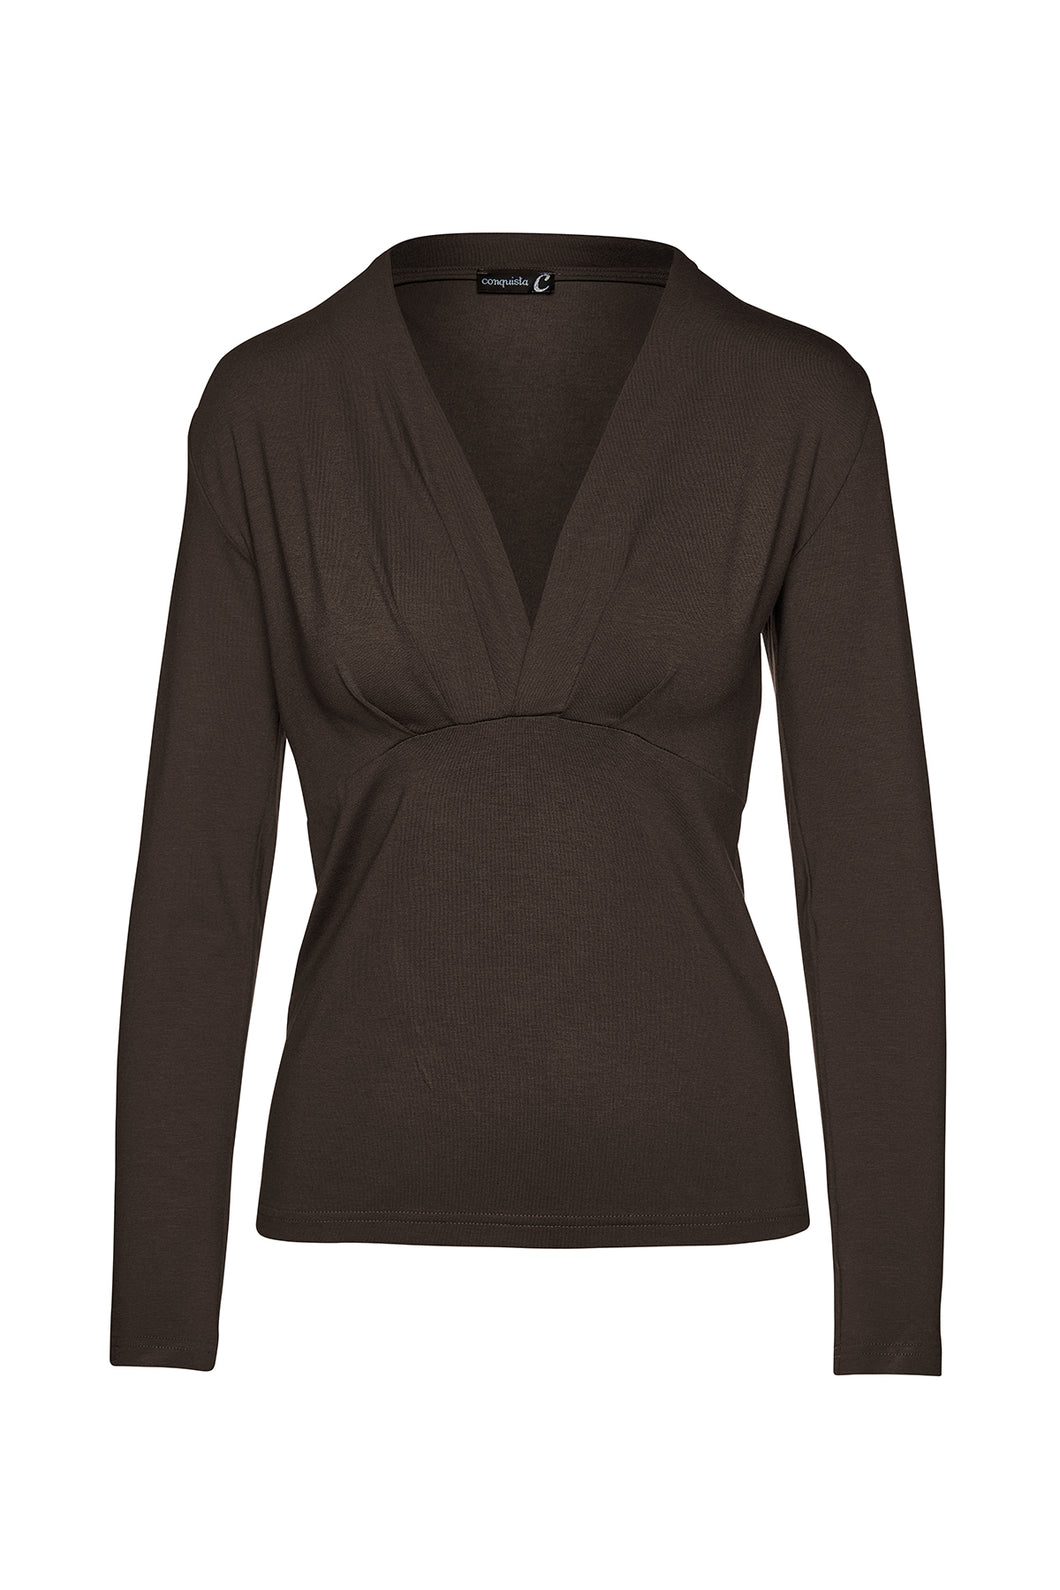 Brown Long Sleeve Faux Wrap Top in Stretch Jersey Sustainable Fabric